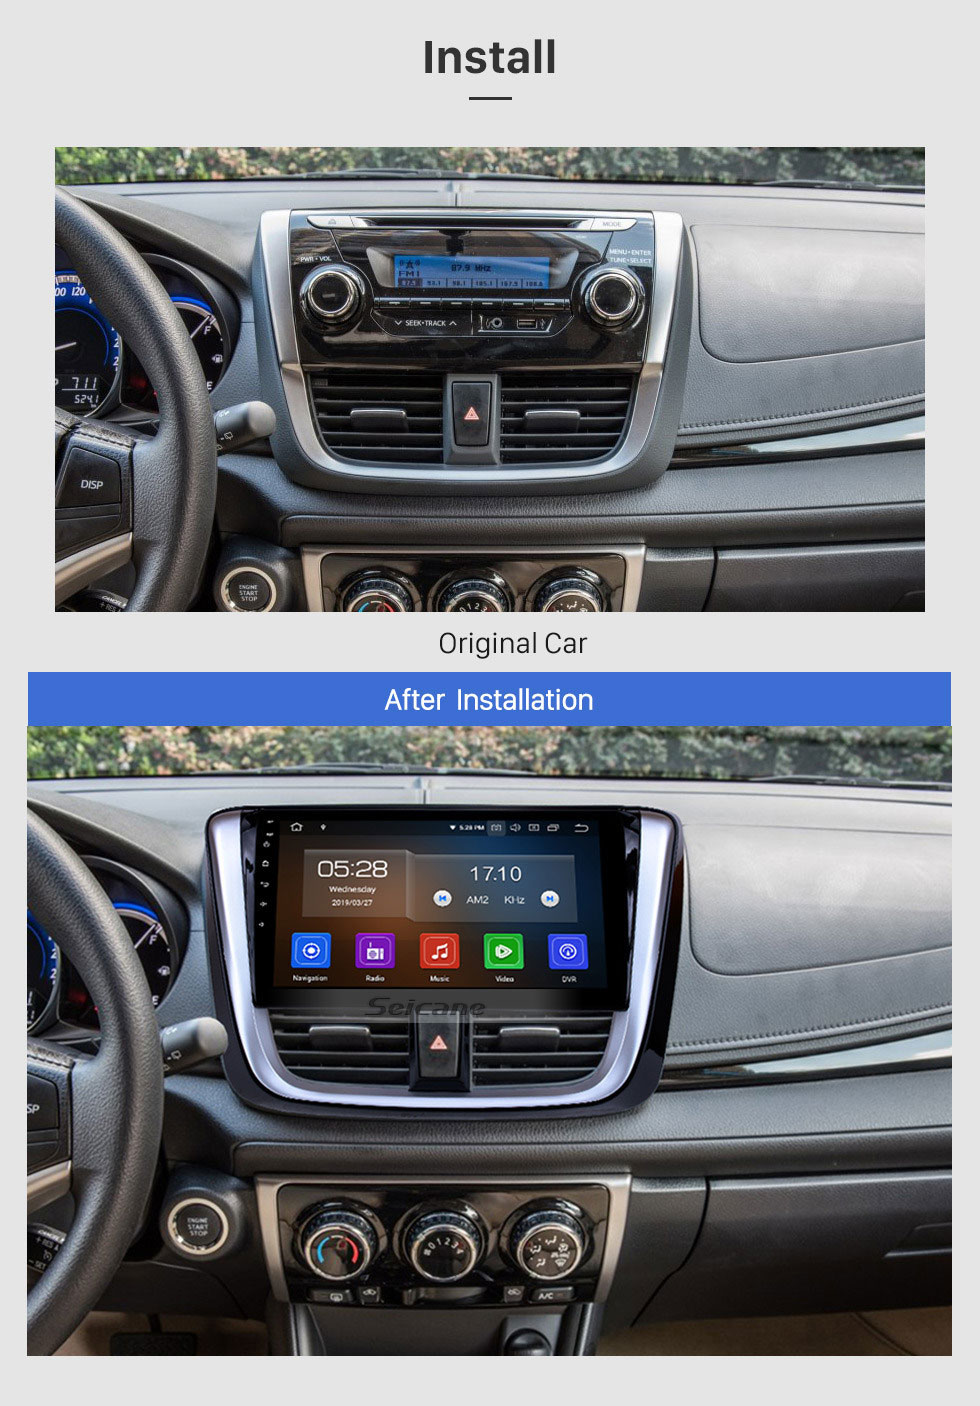 Seicane 10.1 inch 2014 2015 2016 2017 TOYOTA VIOS Android 9.0 HD Touchscreen Radio Auto Stereo GPS Navigation System Bluetooth Support OBD II DVR 3G/4G WIFI Rear view camera